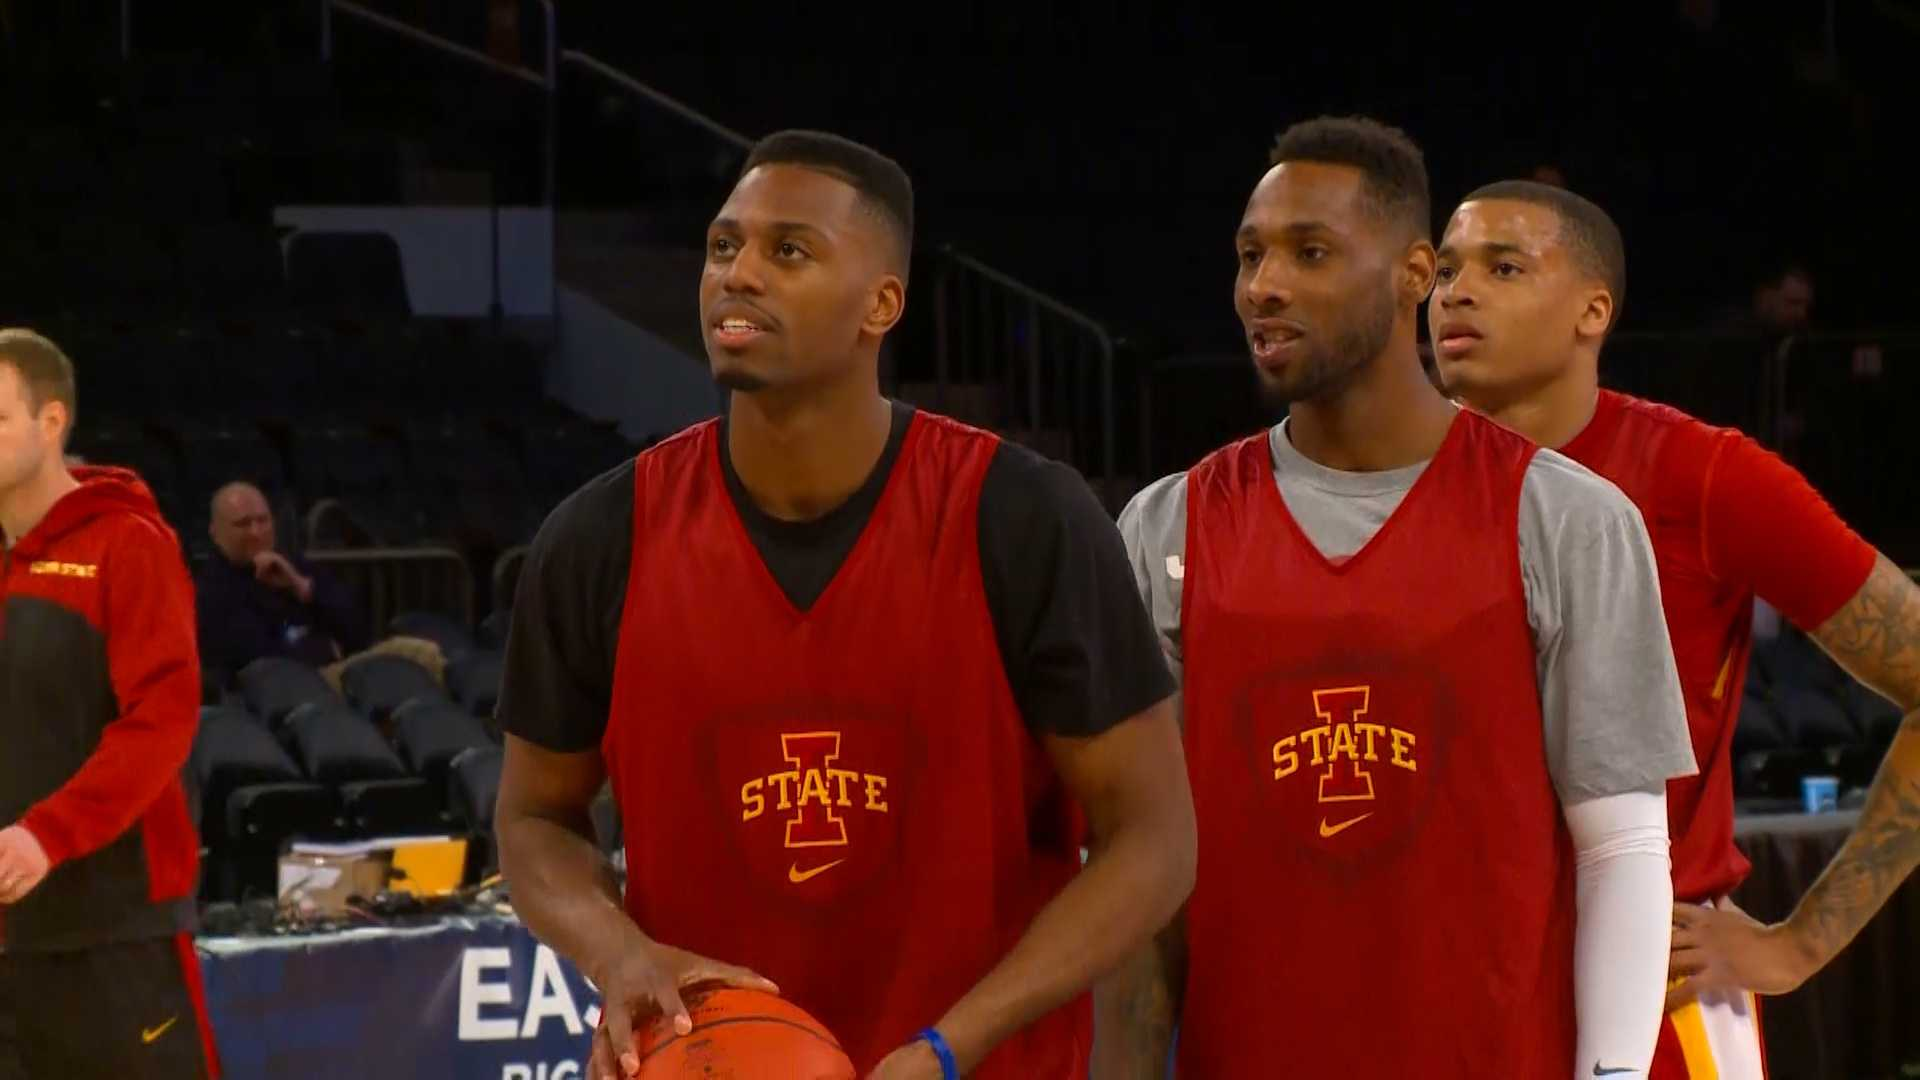 Ejim and Kane have their sights set on the Elite Eight.